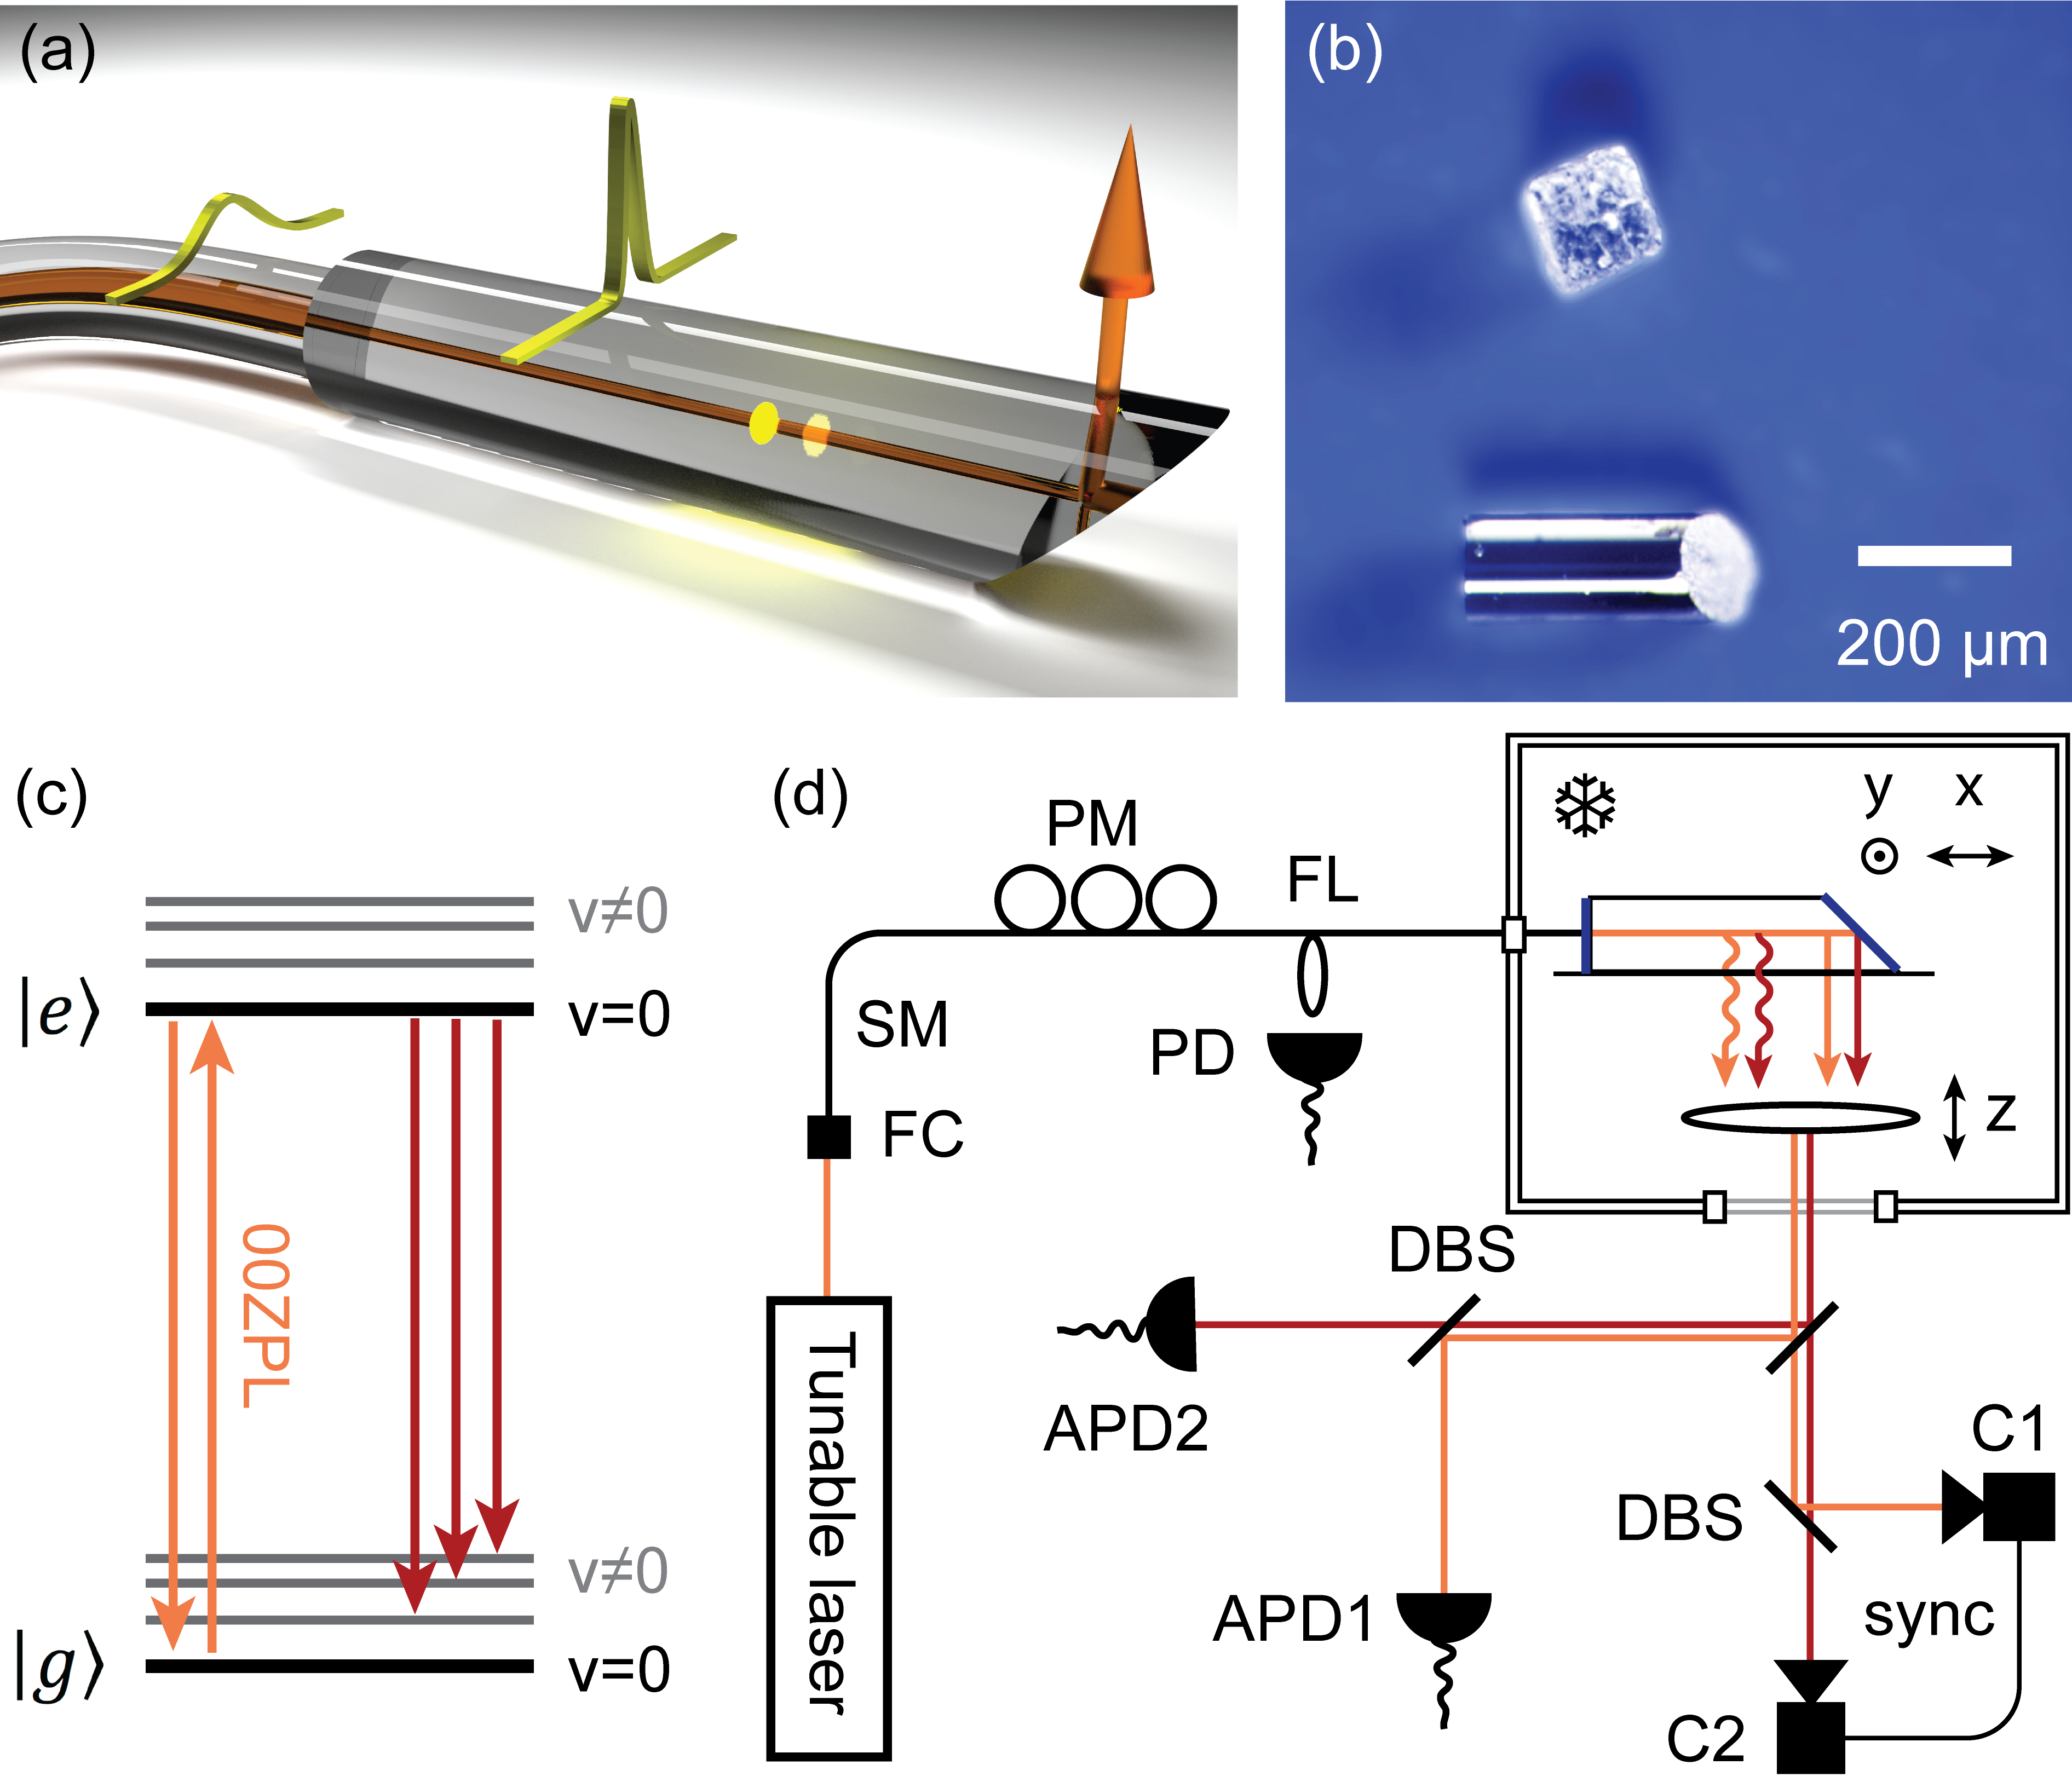 a) Schematics of a filled capillary butt-coupled to a single-mode optical fiber. b) A microscope image of an empty capillary next to a grain of table salt. c) Simplified Jablonski diagram of a DBT molecule. d) Sketch of the experimental arrangement. A CW Ti:Sapph laser is coupled to a single-mode fiber that enters a helium bath cryostat, ending with the nanocapillary. An aspheric lens provides optical access to the sample from a side window. Synchronized cameras C1 and C2 and avalanche photodiodes APD1 and APD2 are used for detection. PD: Photodiode; SM: single-mode fiber; DBS: dichromatic beam splitter; PM: fiber polarization management; FC: fiber coupler; FL: fiber leakage for intensity stabilization.